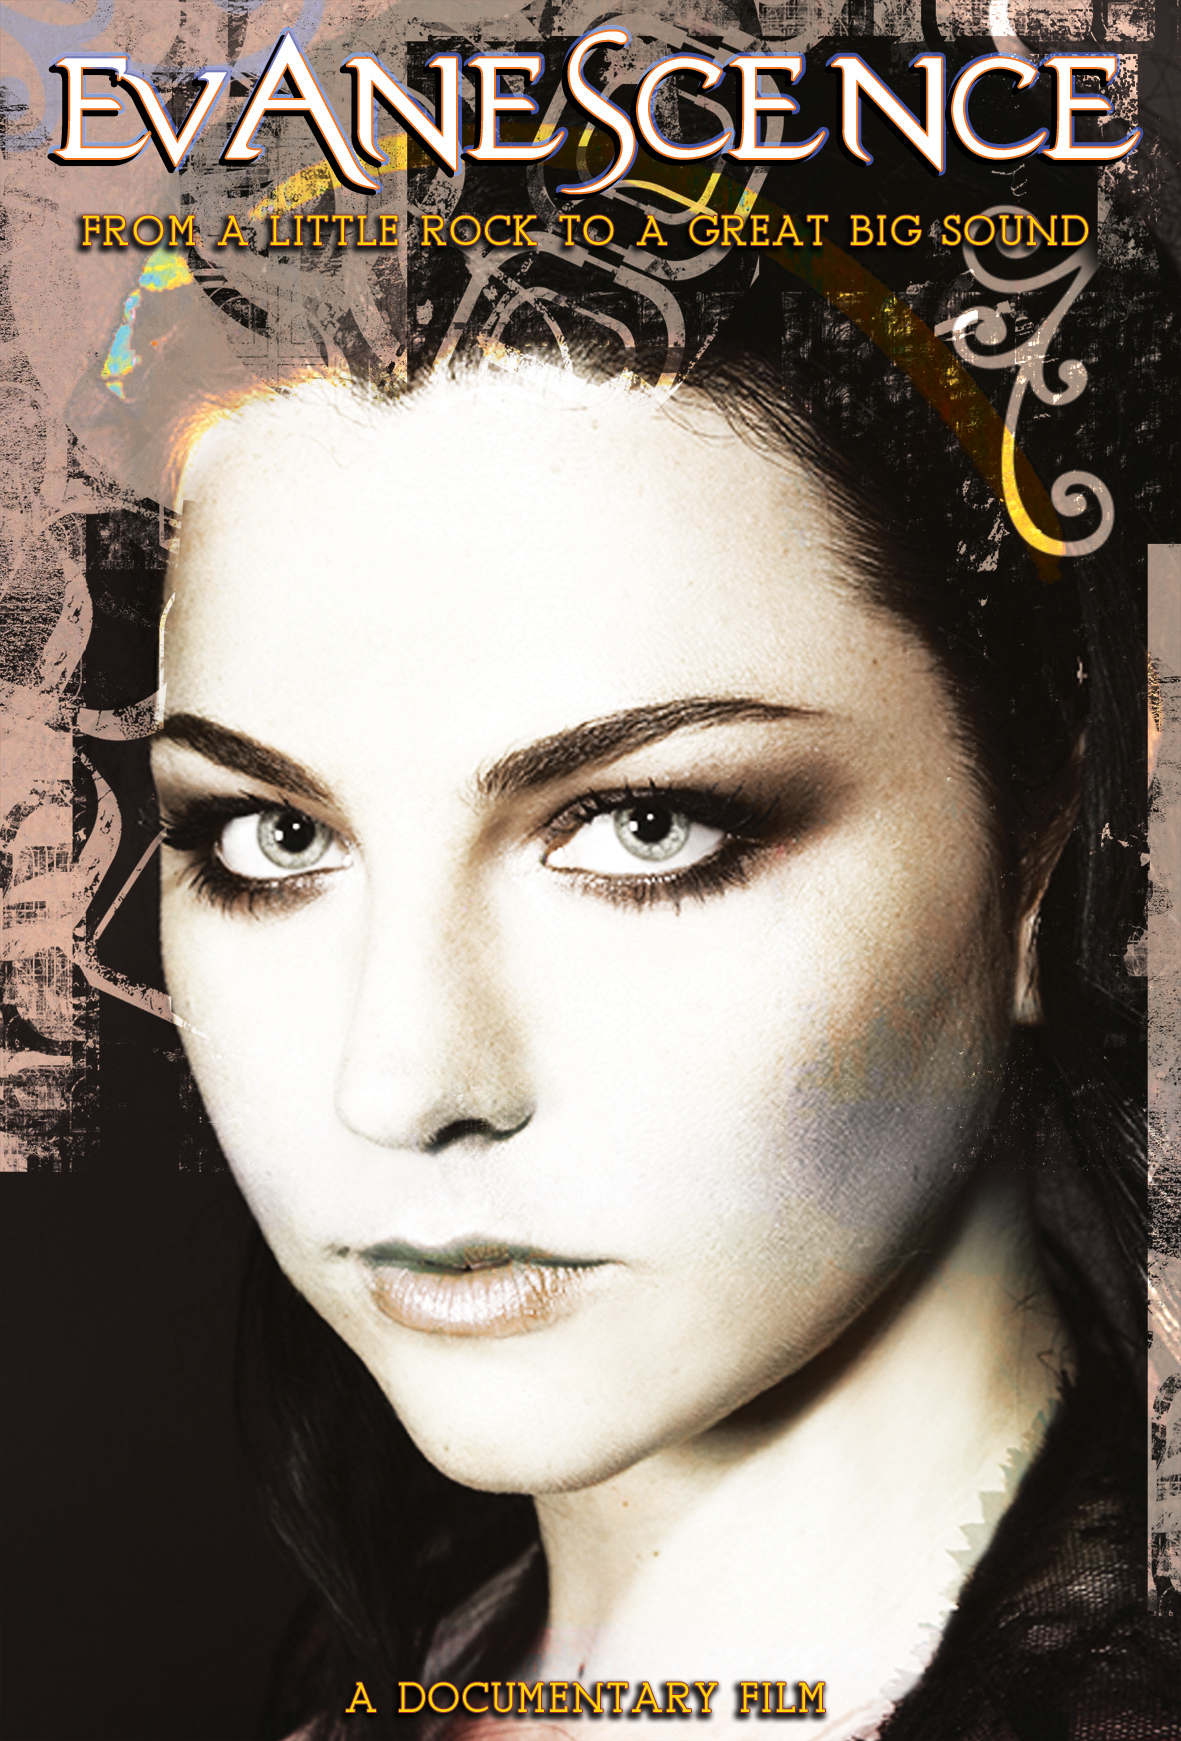 Evanescence: From a Little Rock to a Great Big Sound